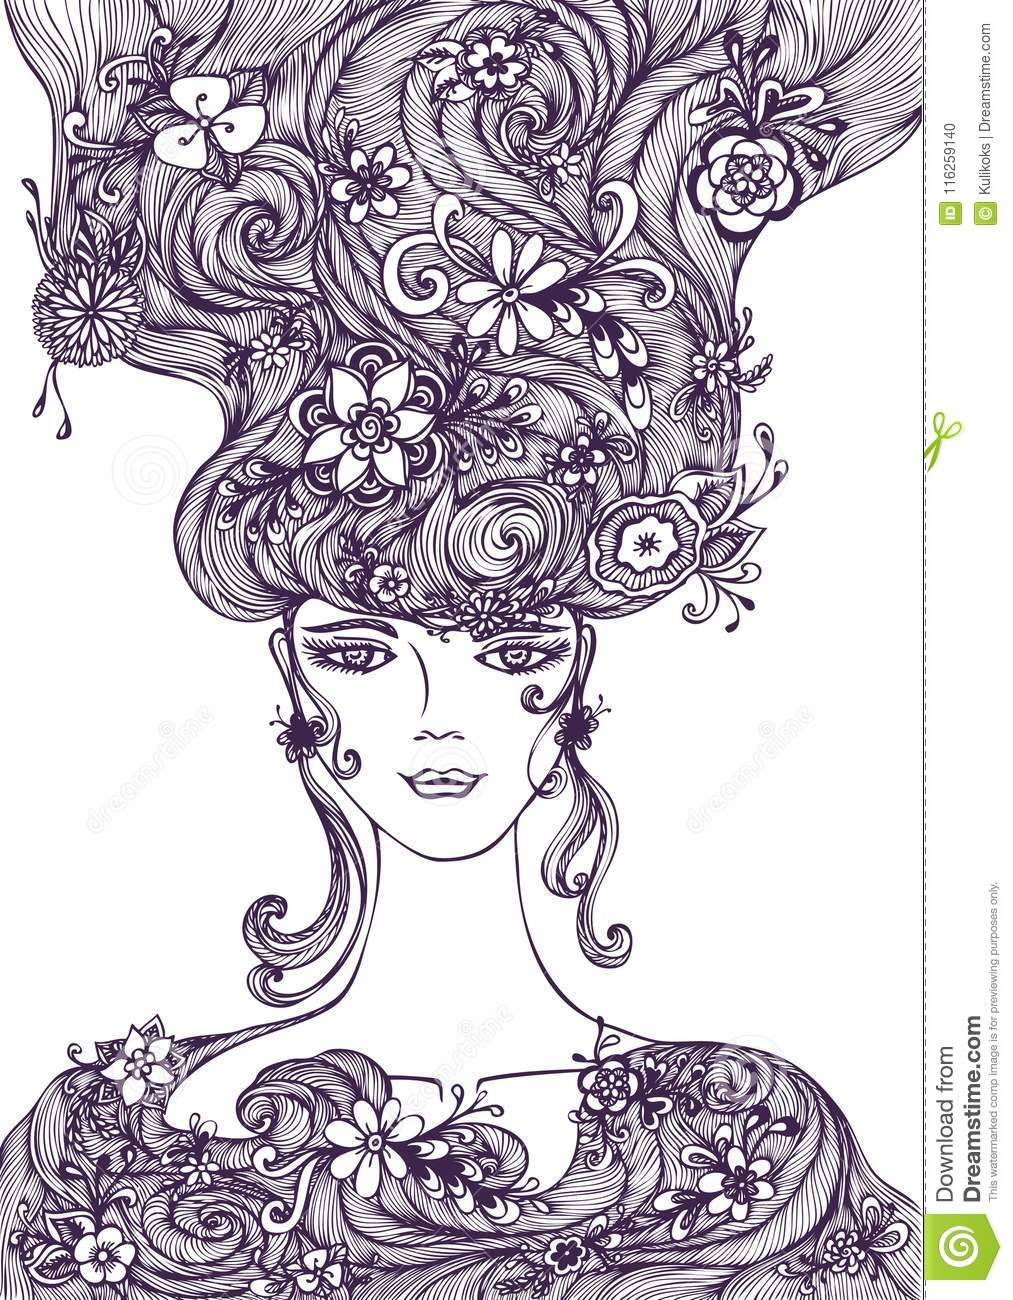 Beautiful hand draw girl with flowers hair black on white